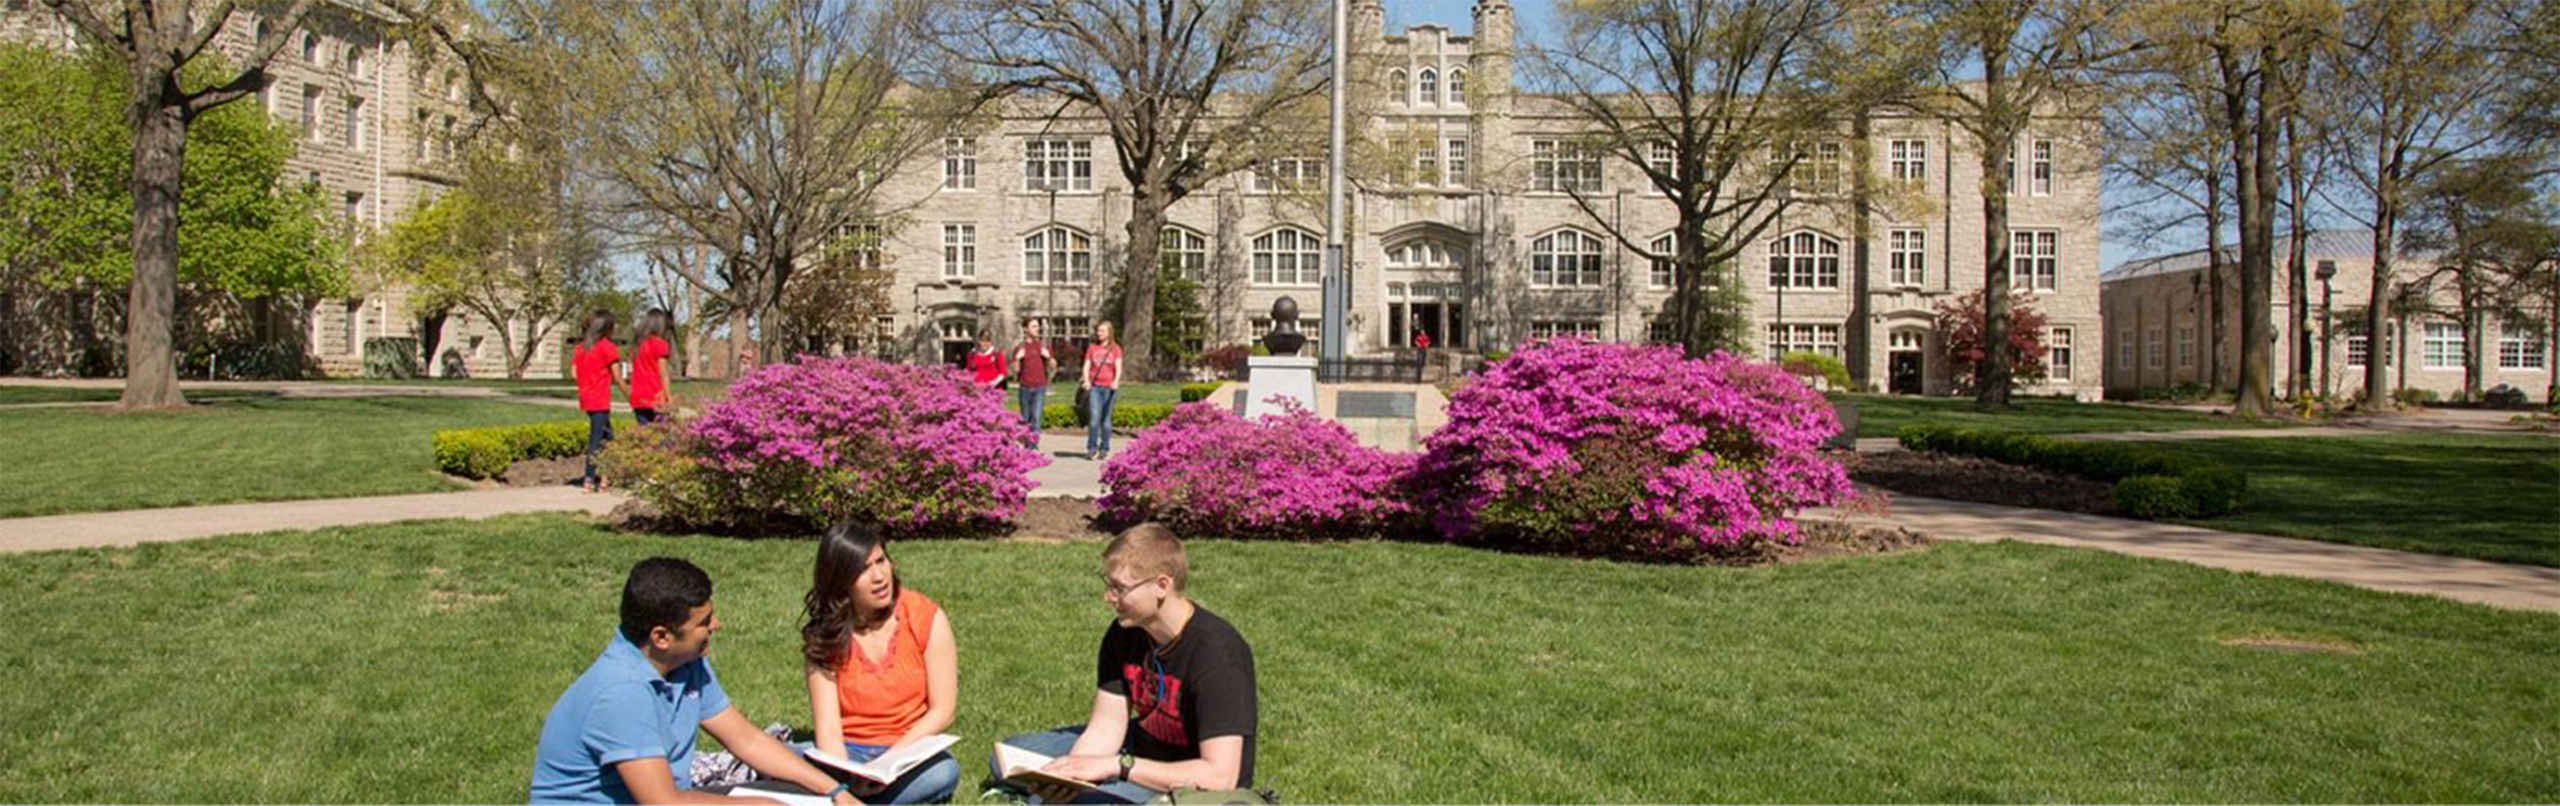 Three students sitting on the grass on campus